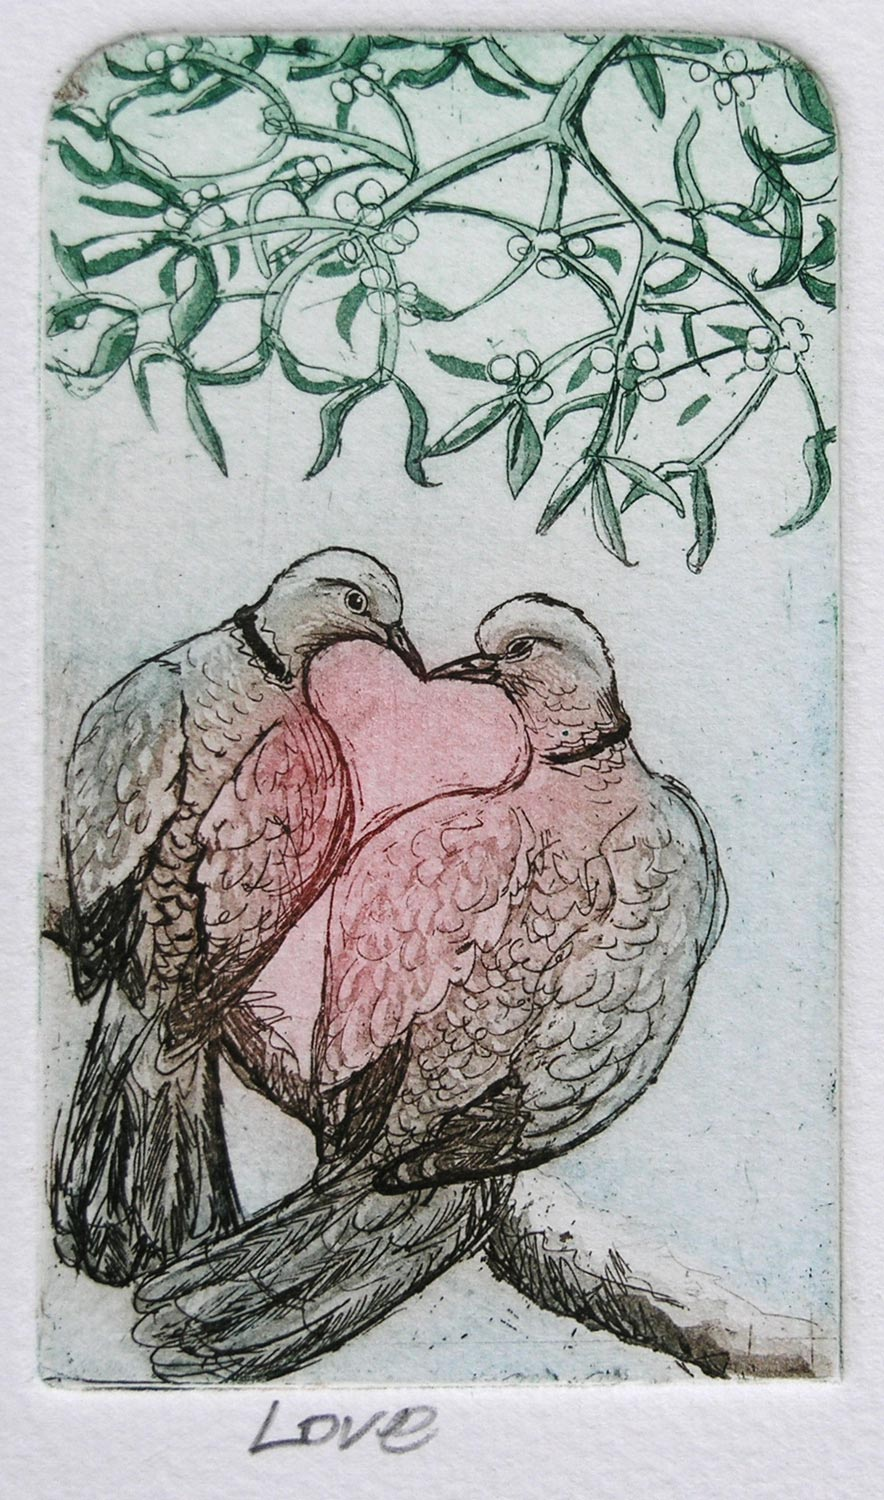 Love   etching   20 x 18cm  £48 (unframed) £72 (framed)